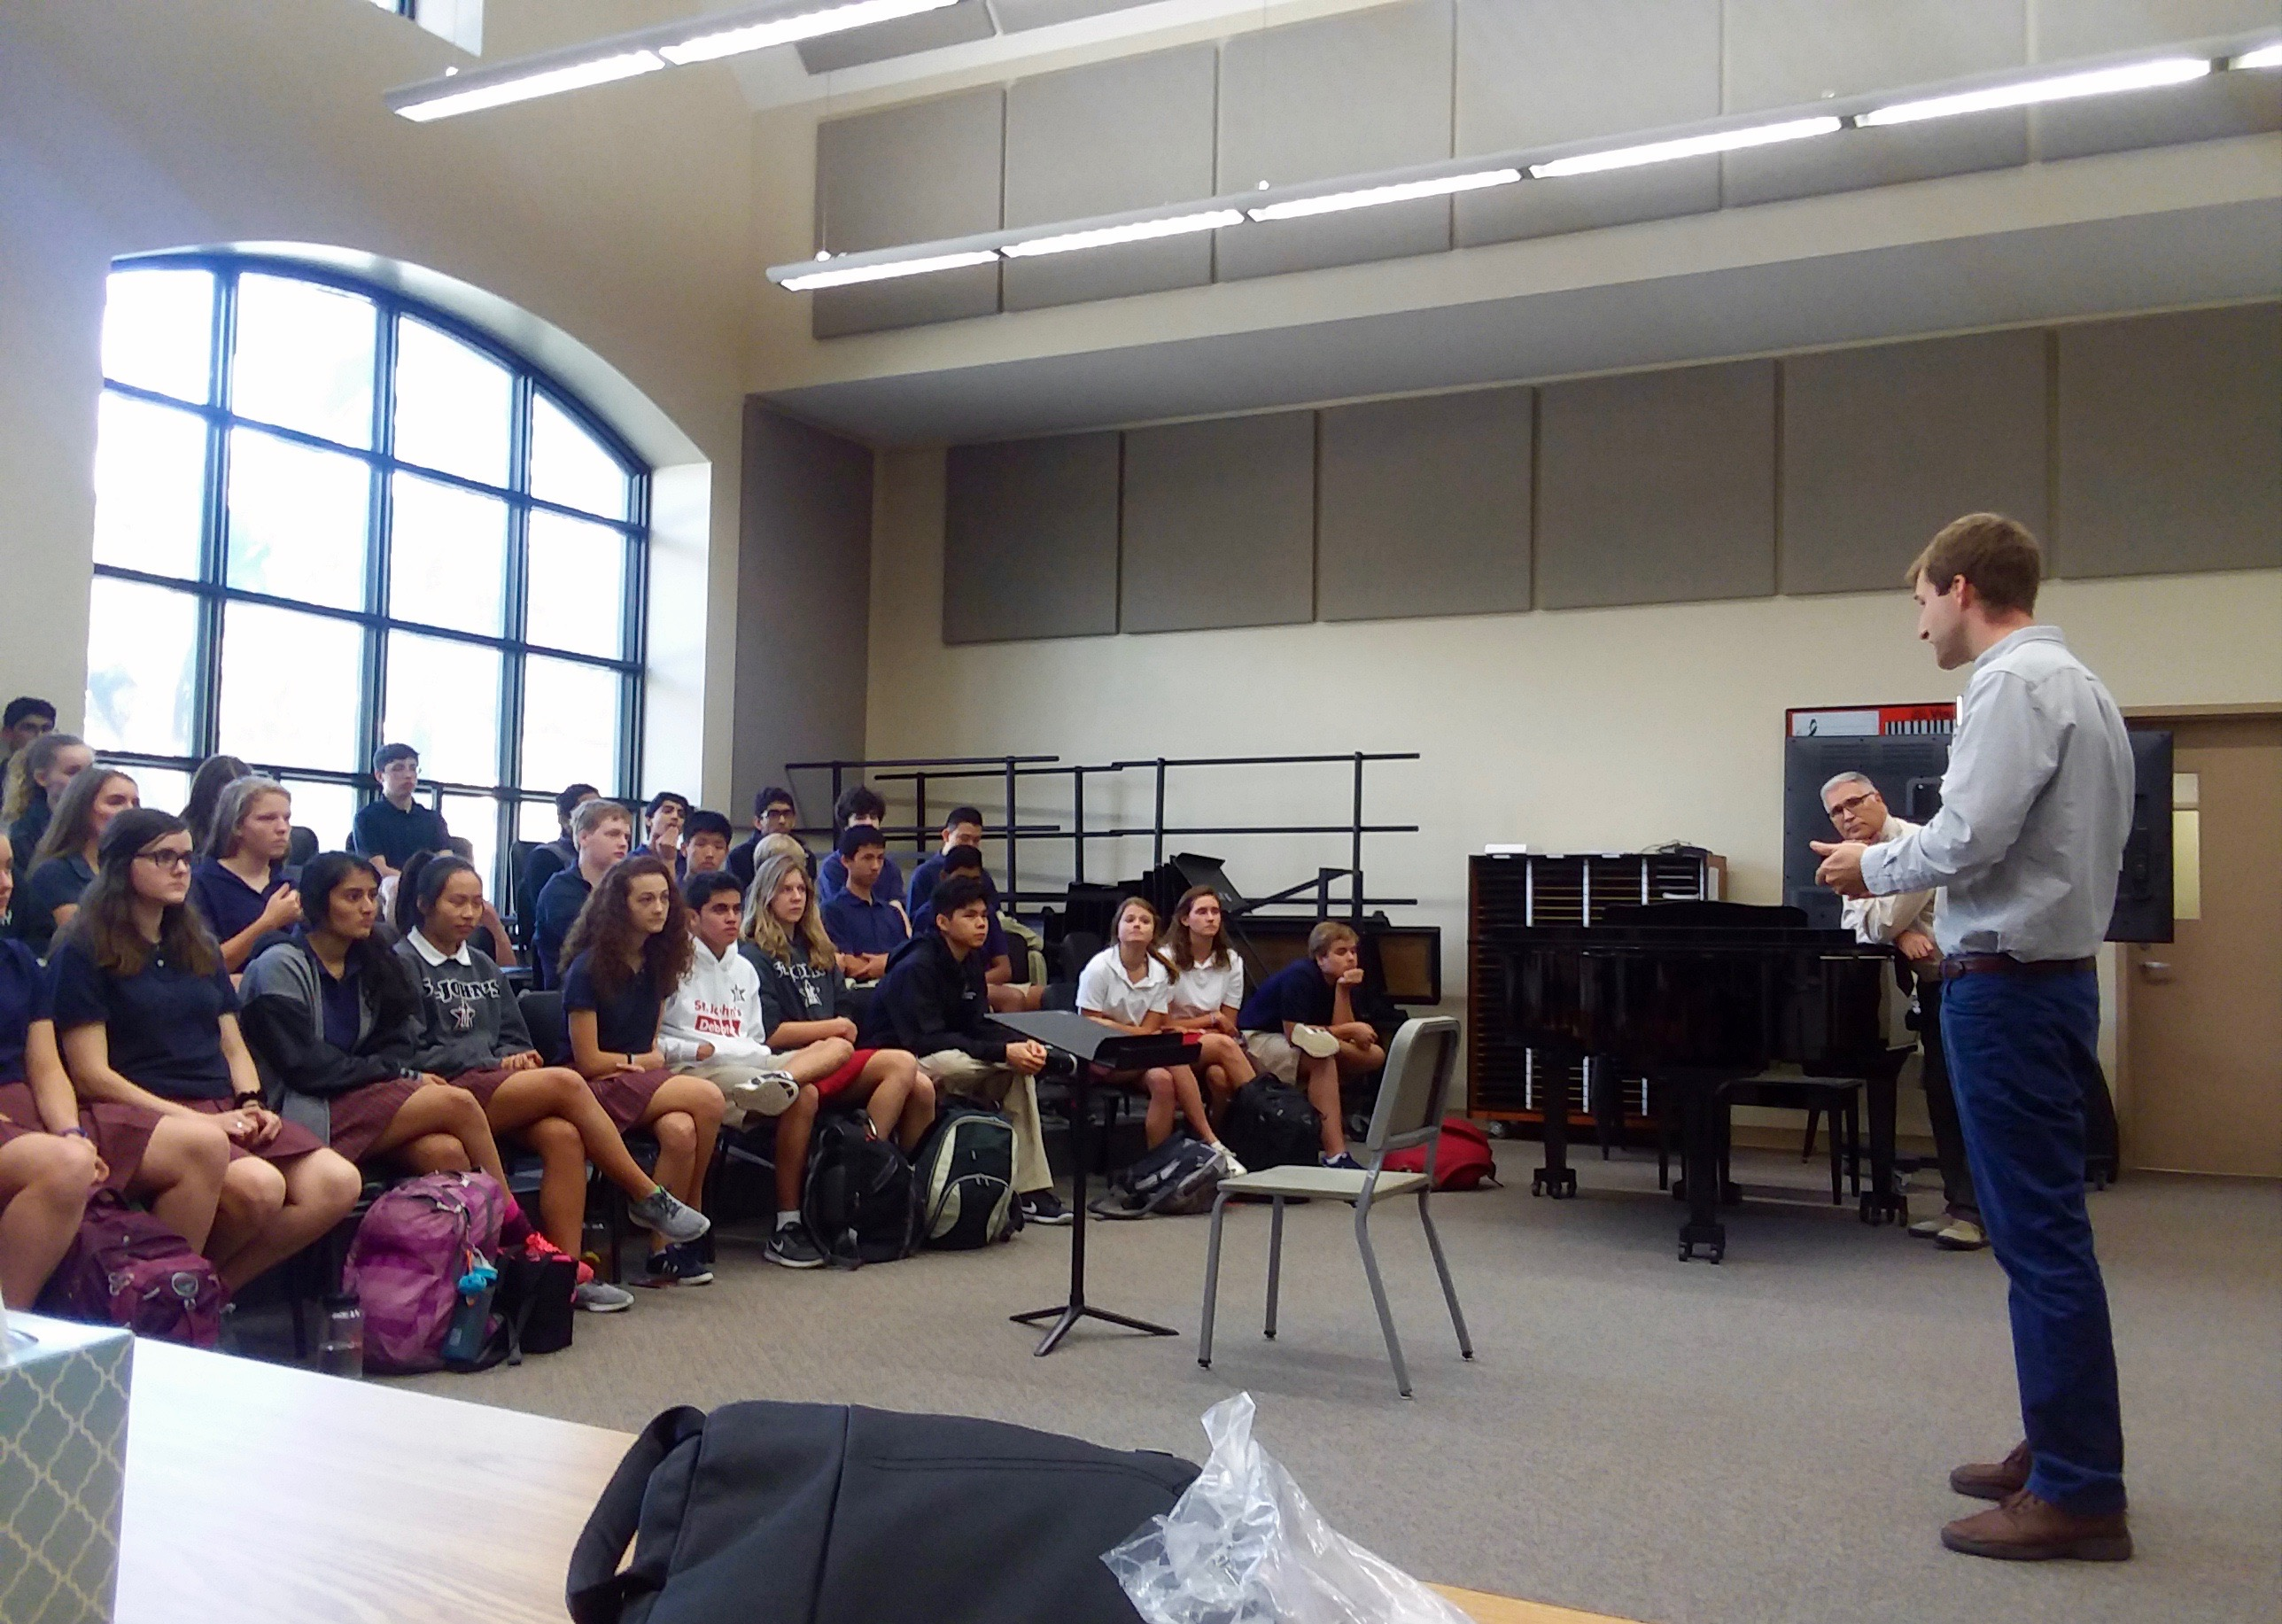 Guest teaching session at US school